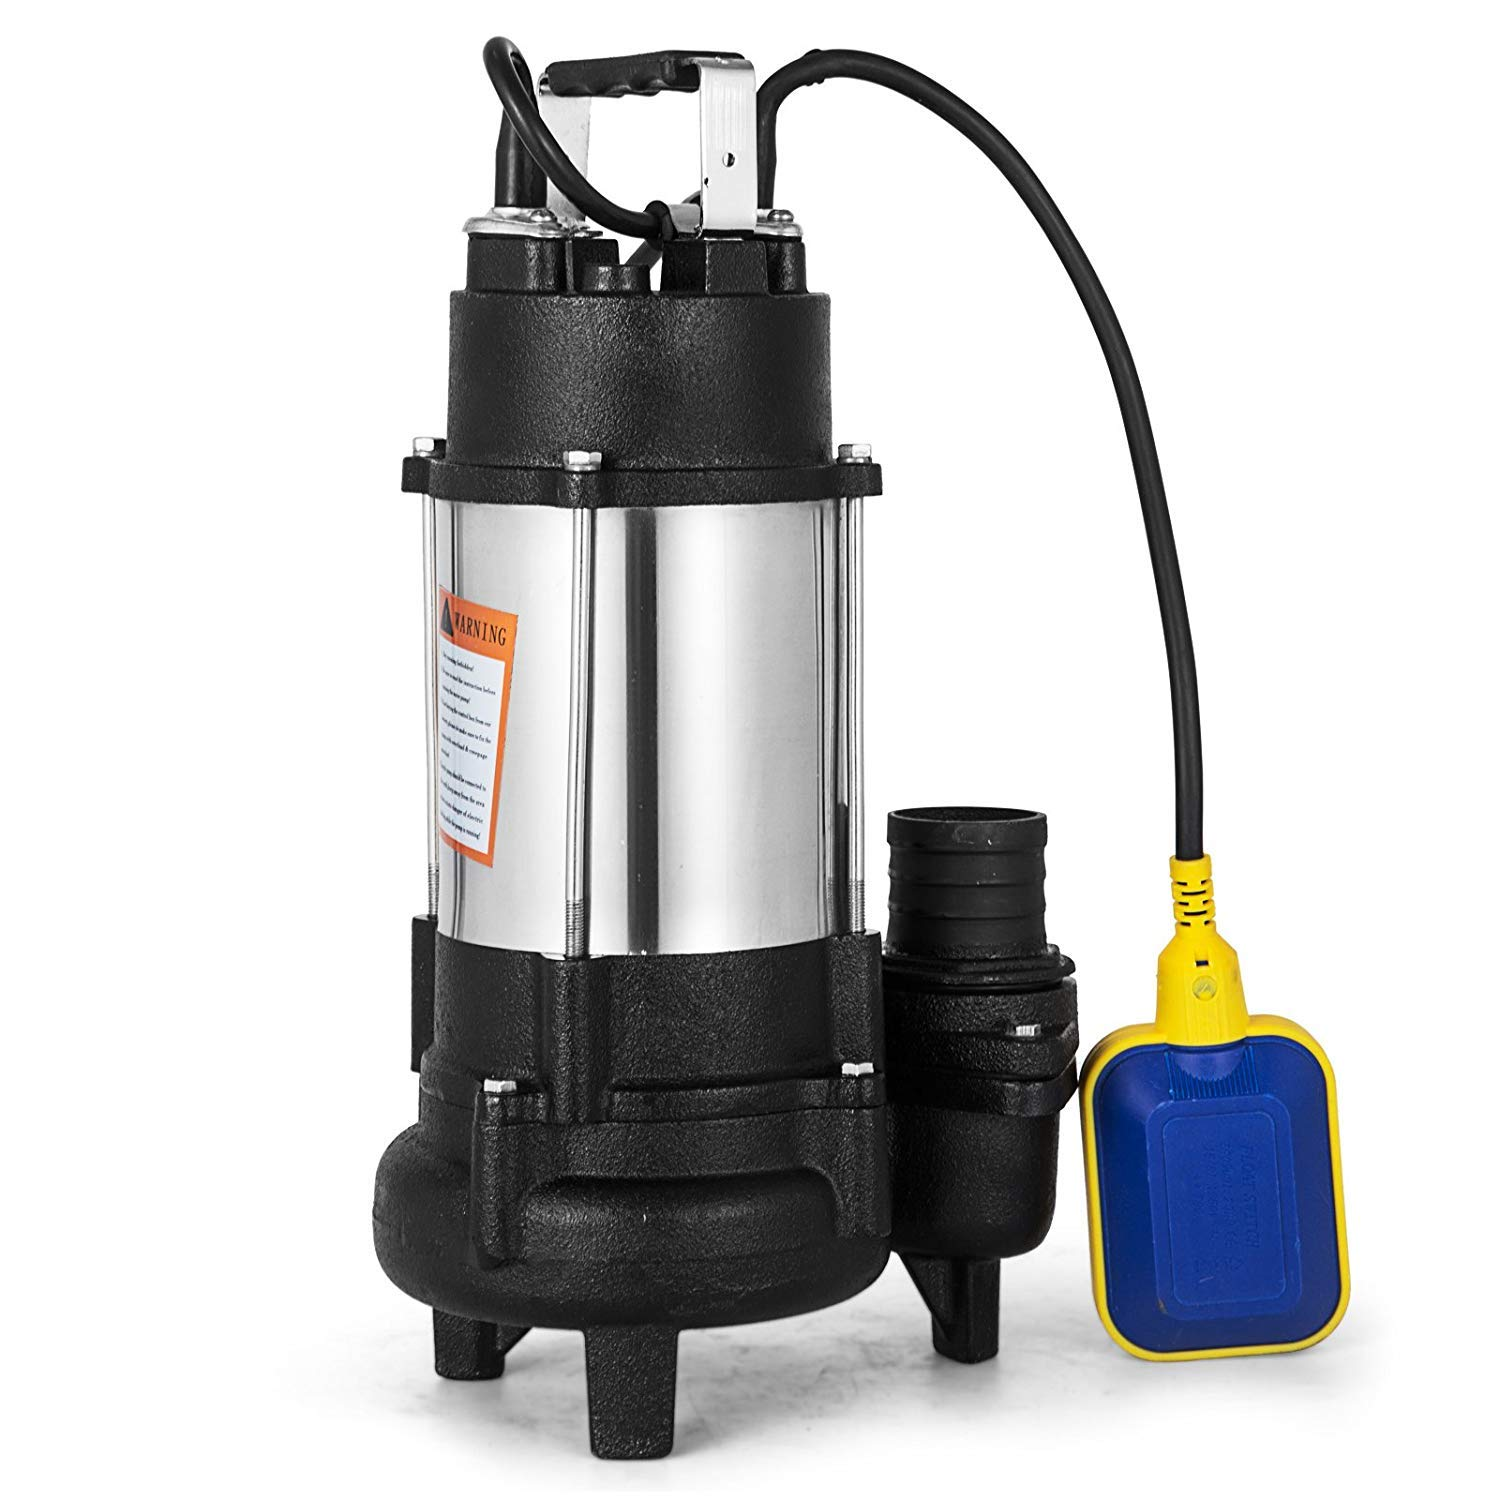 AB Submersible Water Pump Heavy Duty Cast steel Sewage Pump 1HP Electric Removal for Clean Dirty Water Transfer With 20FT Cable & Plug